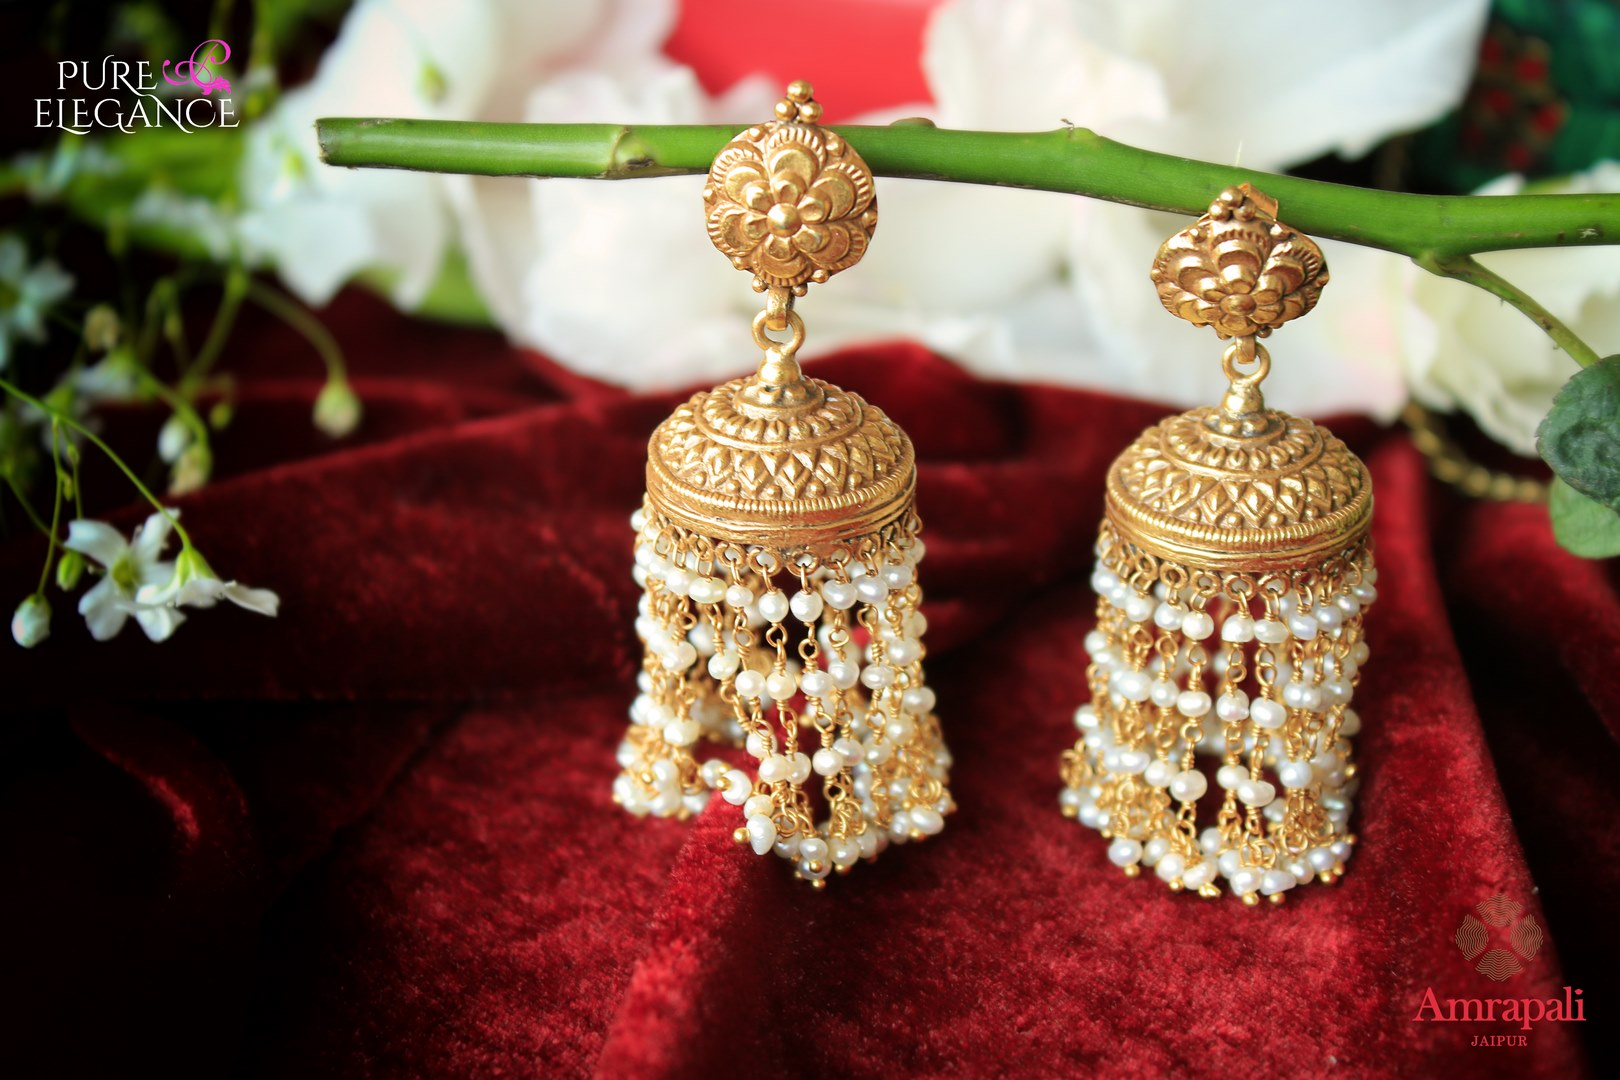 Buy ethnic Amrapali silver gold plated earrings online in USA with pearl tassels. Add a unique touch to your Indian look at special occasions with these gorgeous earrings. Shop more such exquisite Indian jewelry in USA at Pure Elegance, you can visit our exclusive fashion store in USA or shop online.-flatlay